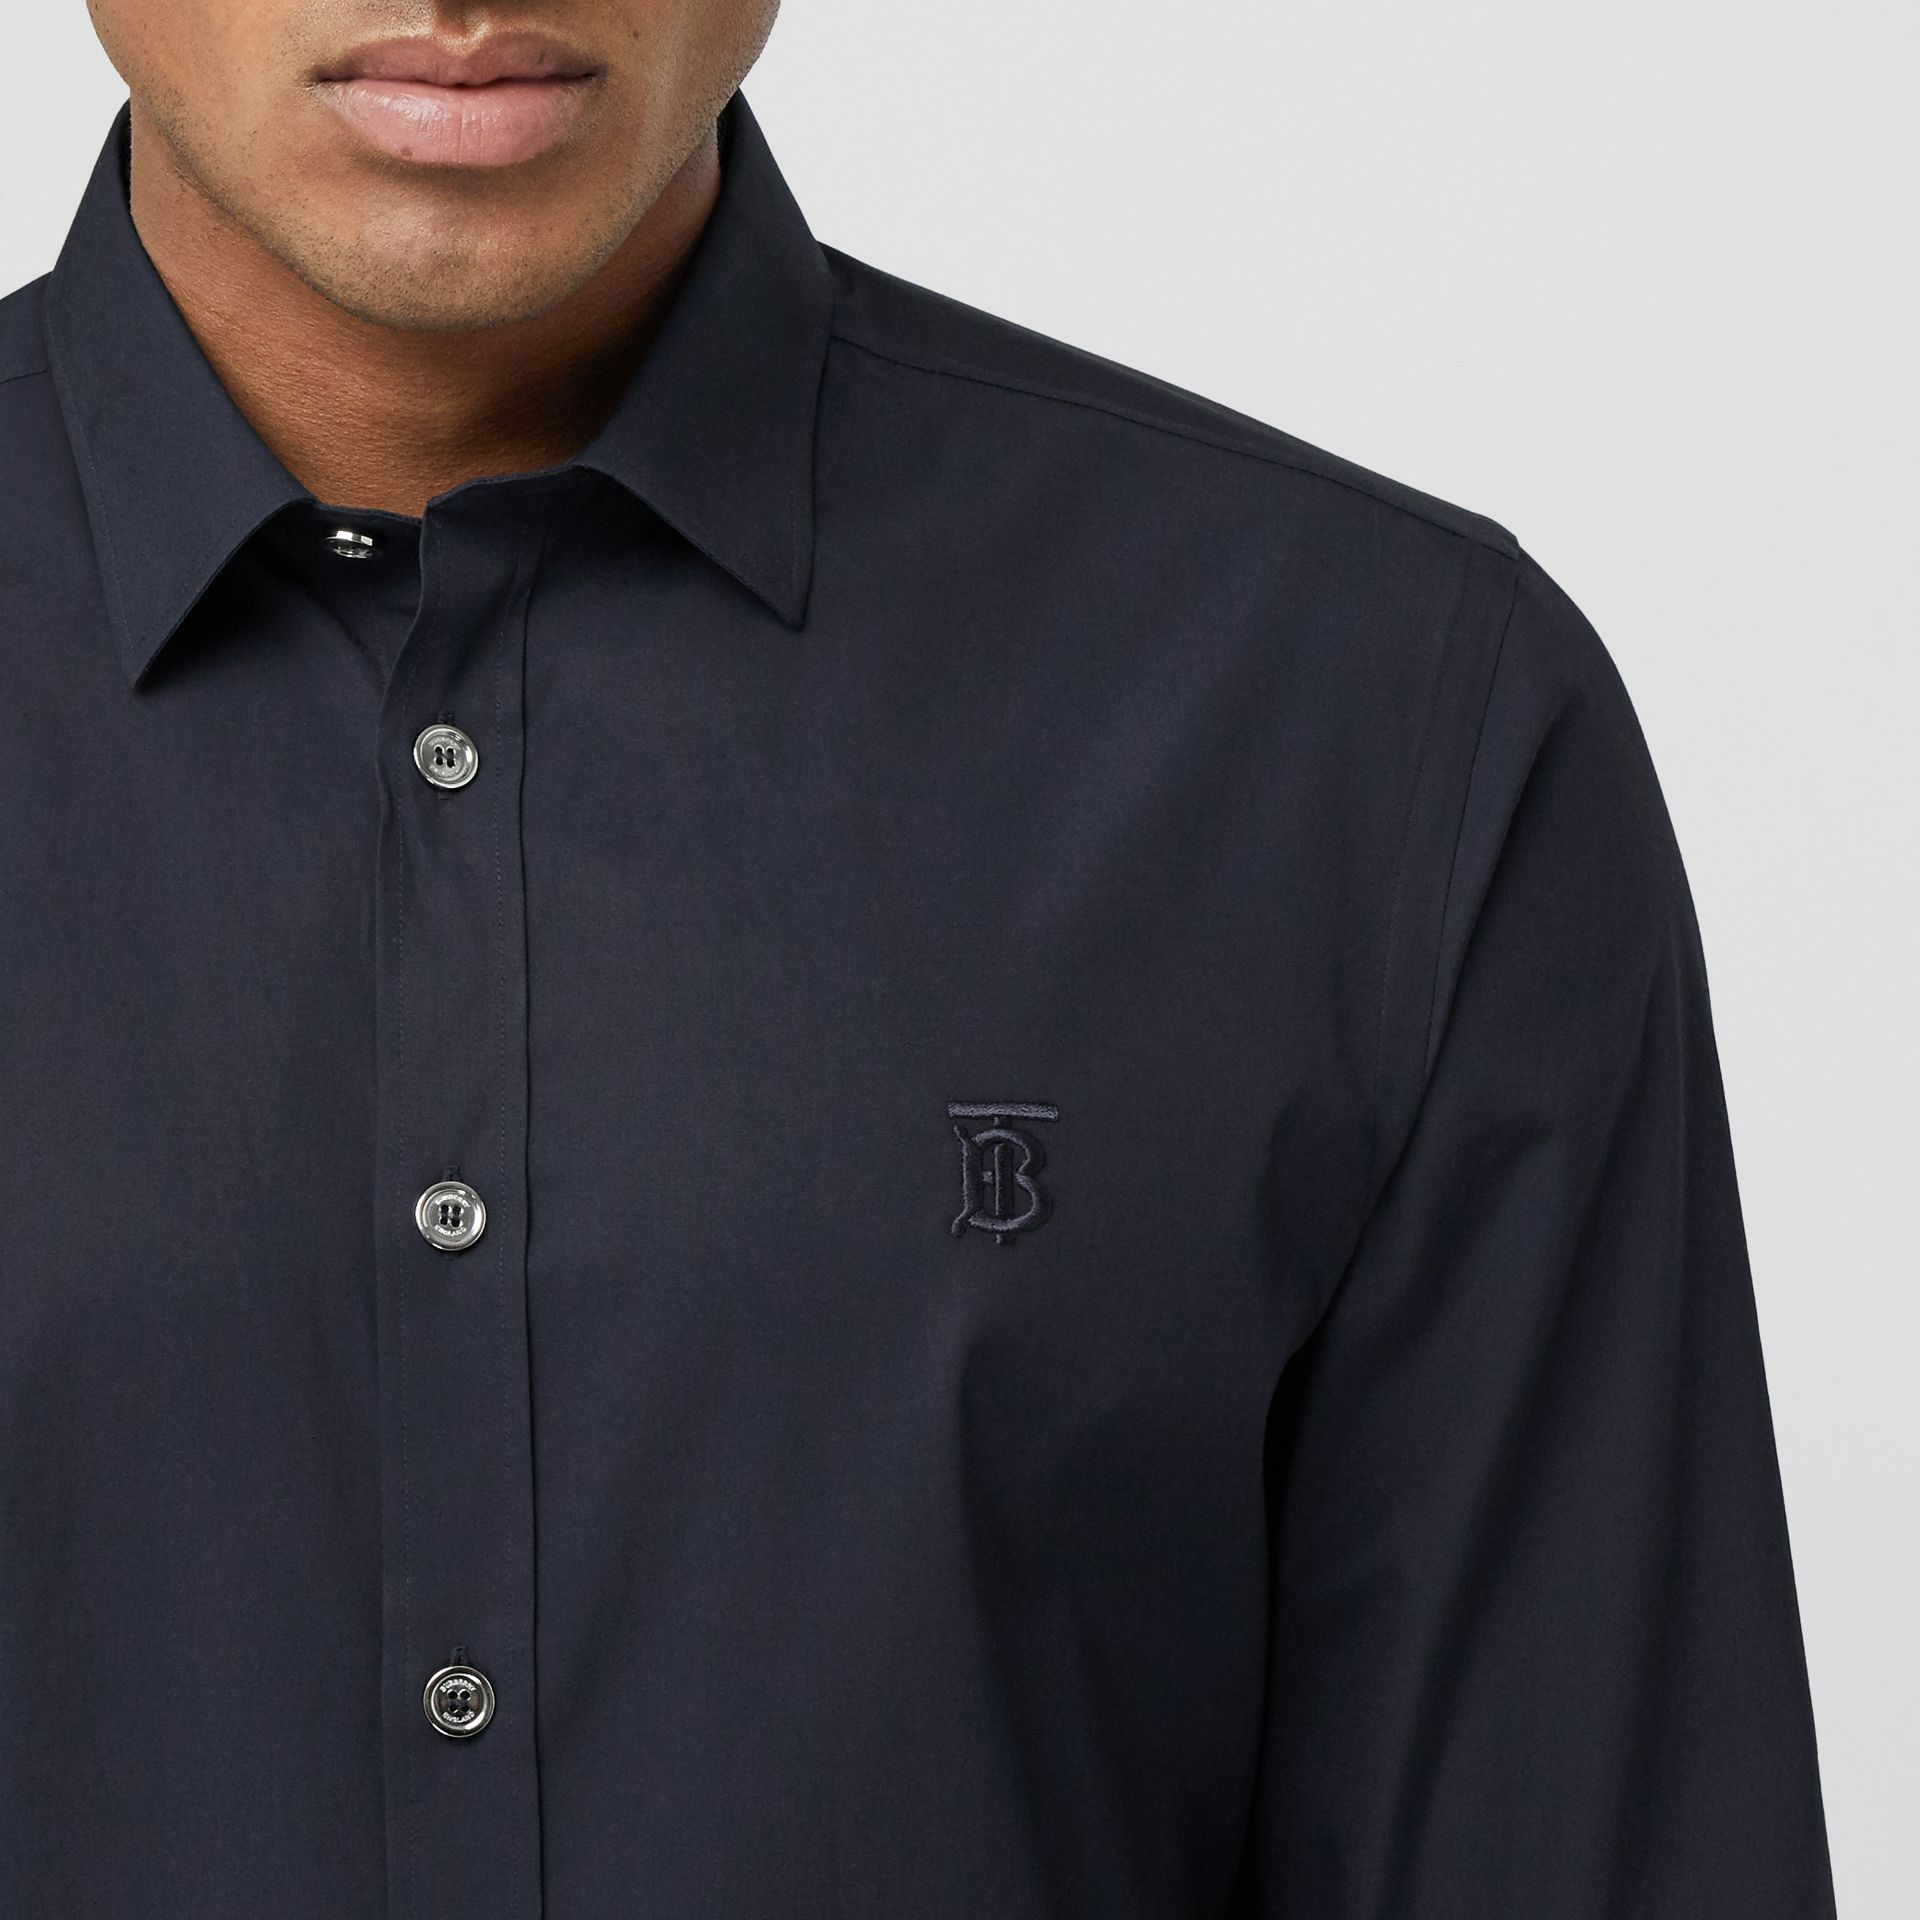 Monogram Motif Stretch Cotton Poplin Shirt in Navy - Men | Burberry Australia - gallery image 1